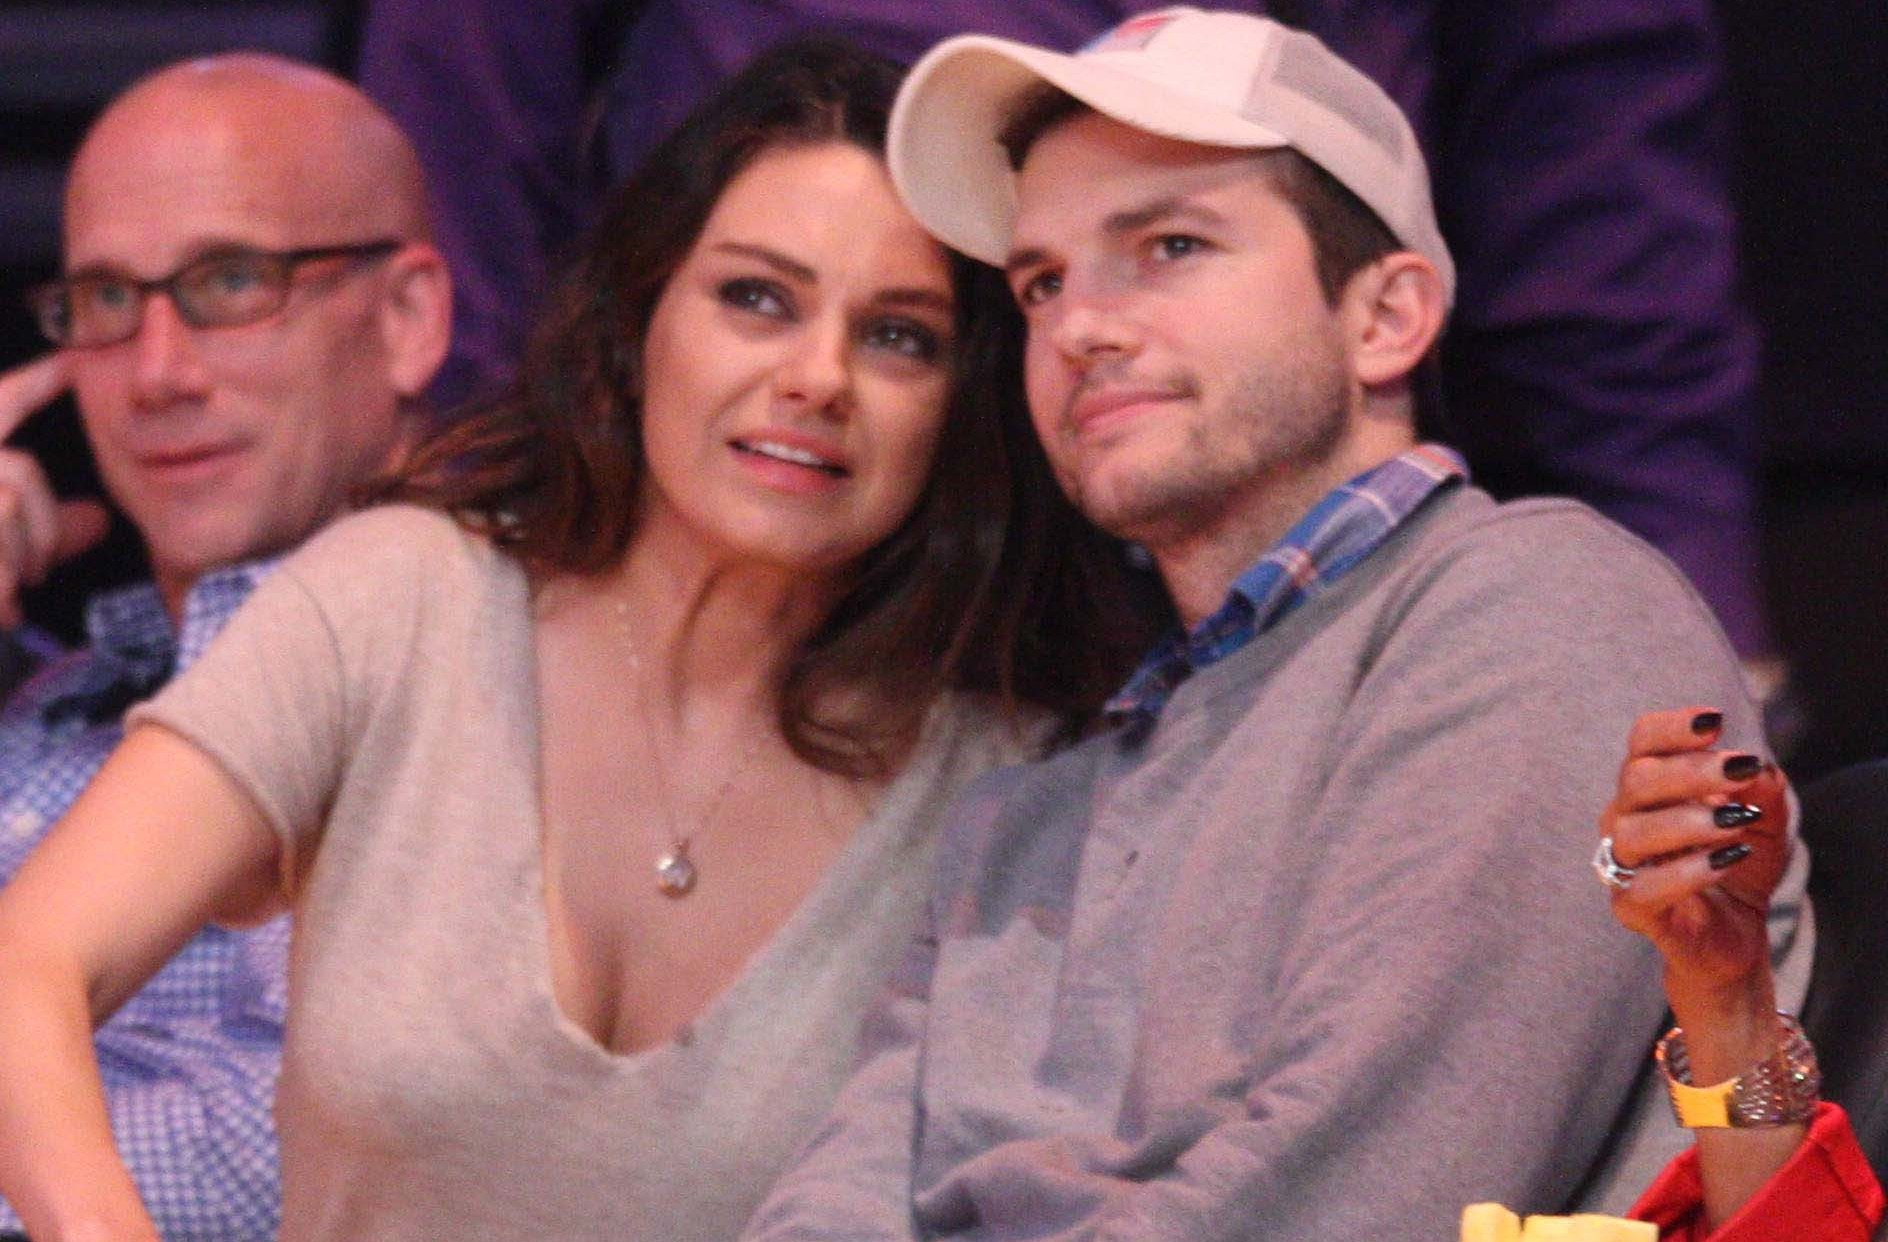 Ashton Kutcher Sex Life